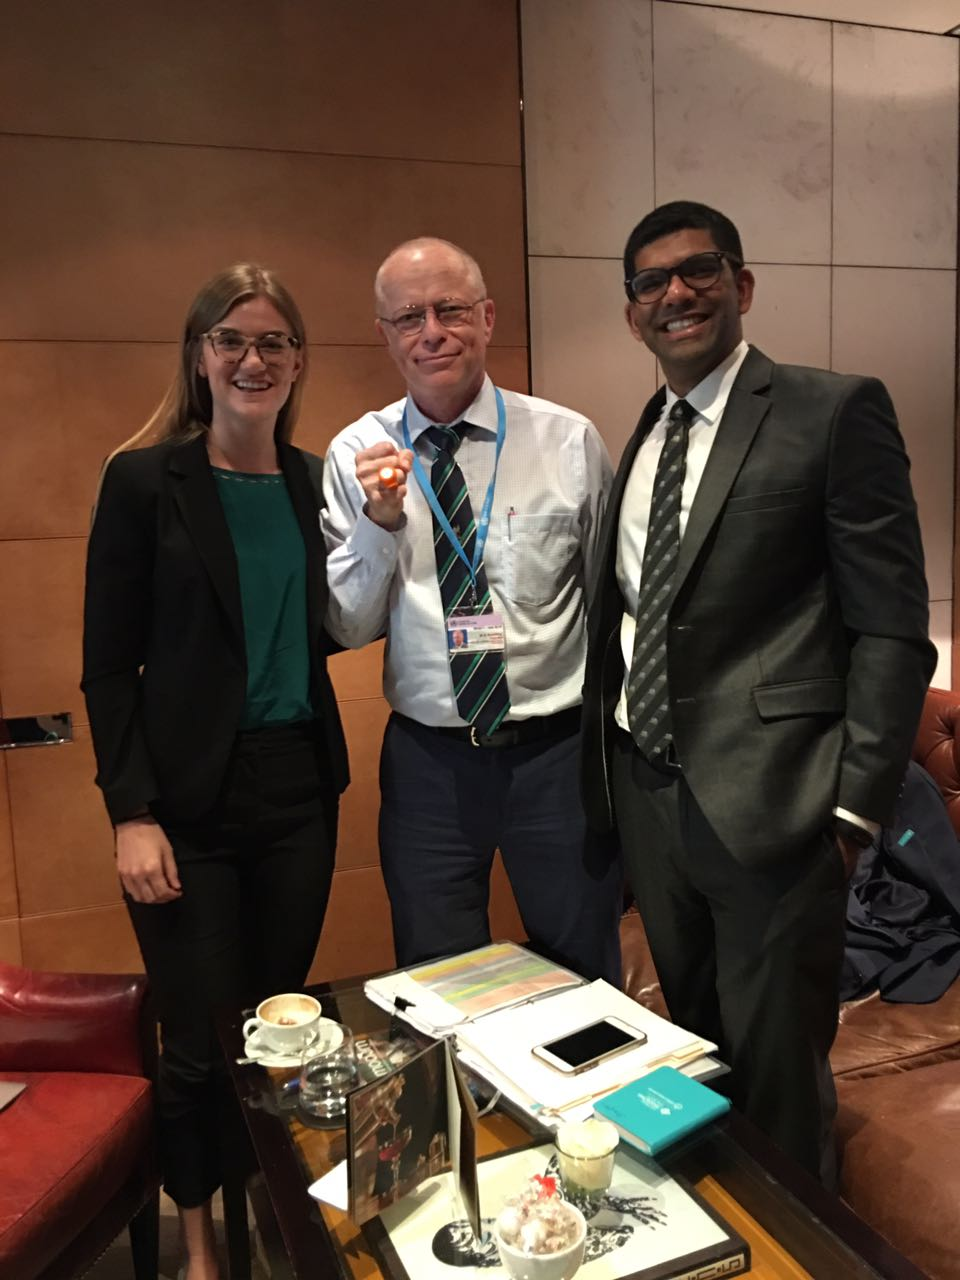 In July, we attended the World Health Assembly held at United Nations in Geneva. The team caught up with Stefan Peterson, Chief of Health of UNICEF to discuss our work preventing Hypothermia in small babies.